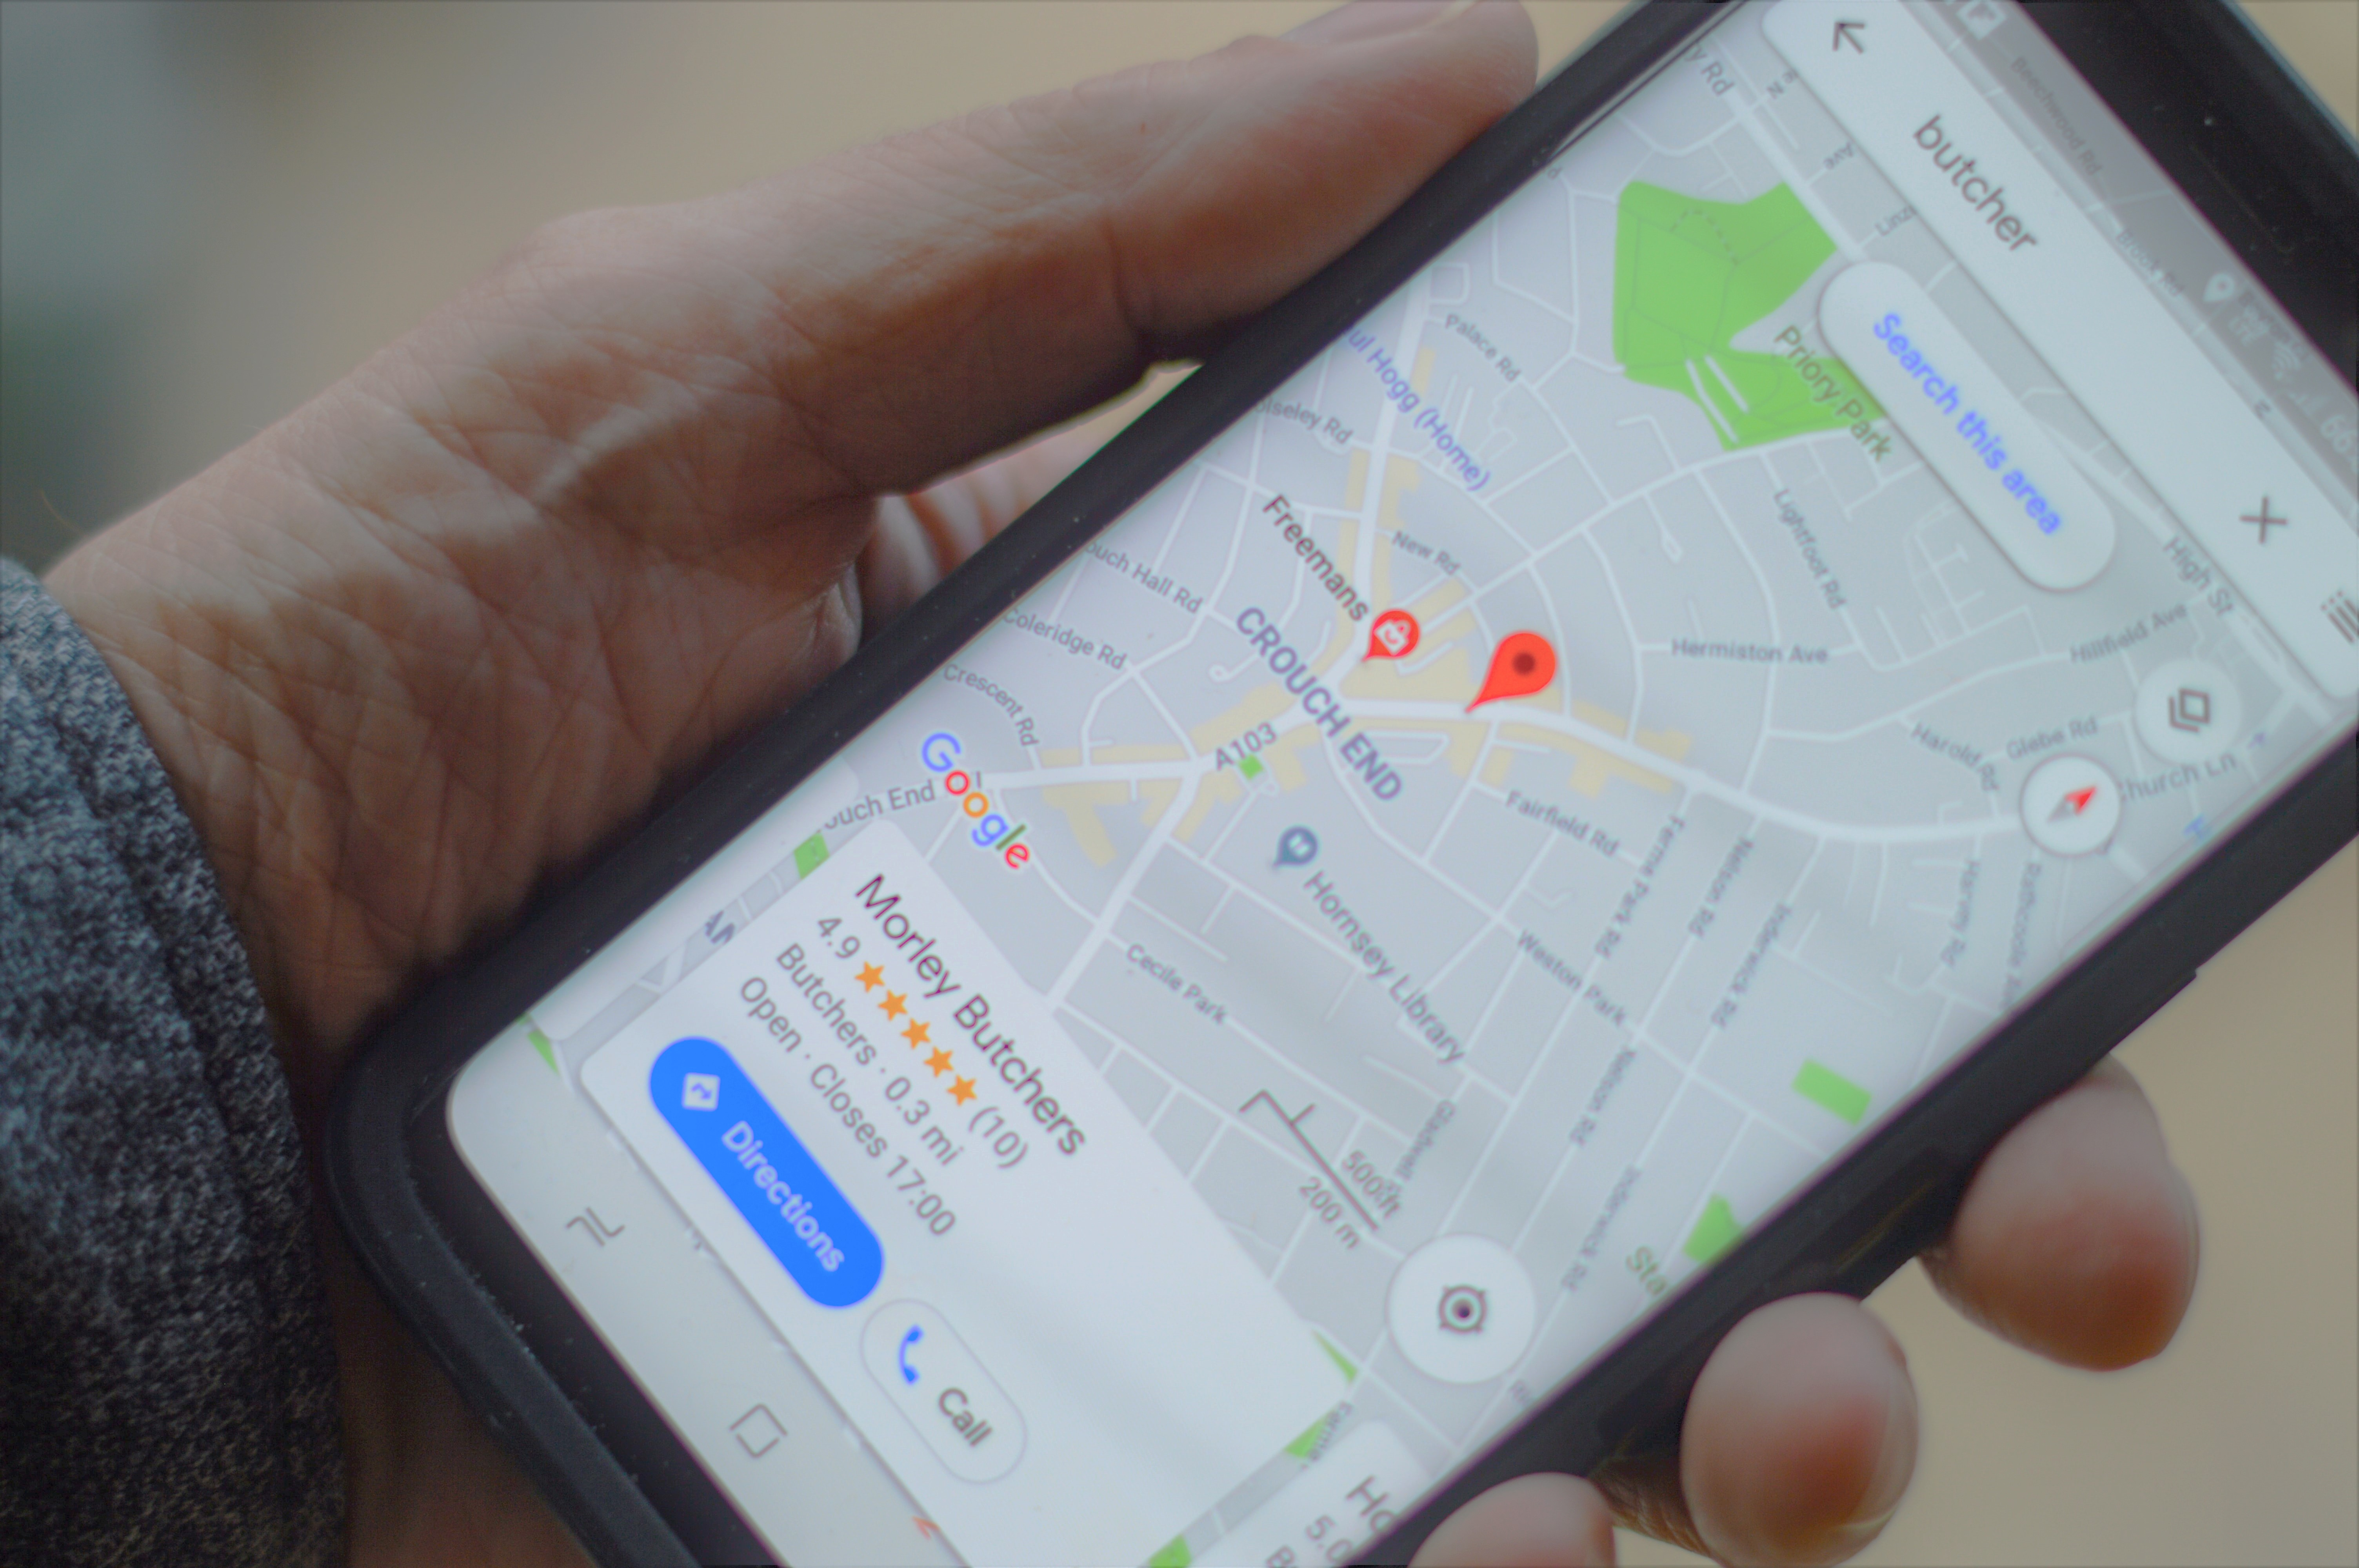 Location-based Targeting With Kritter